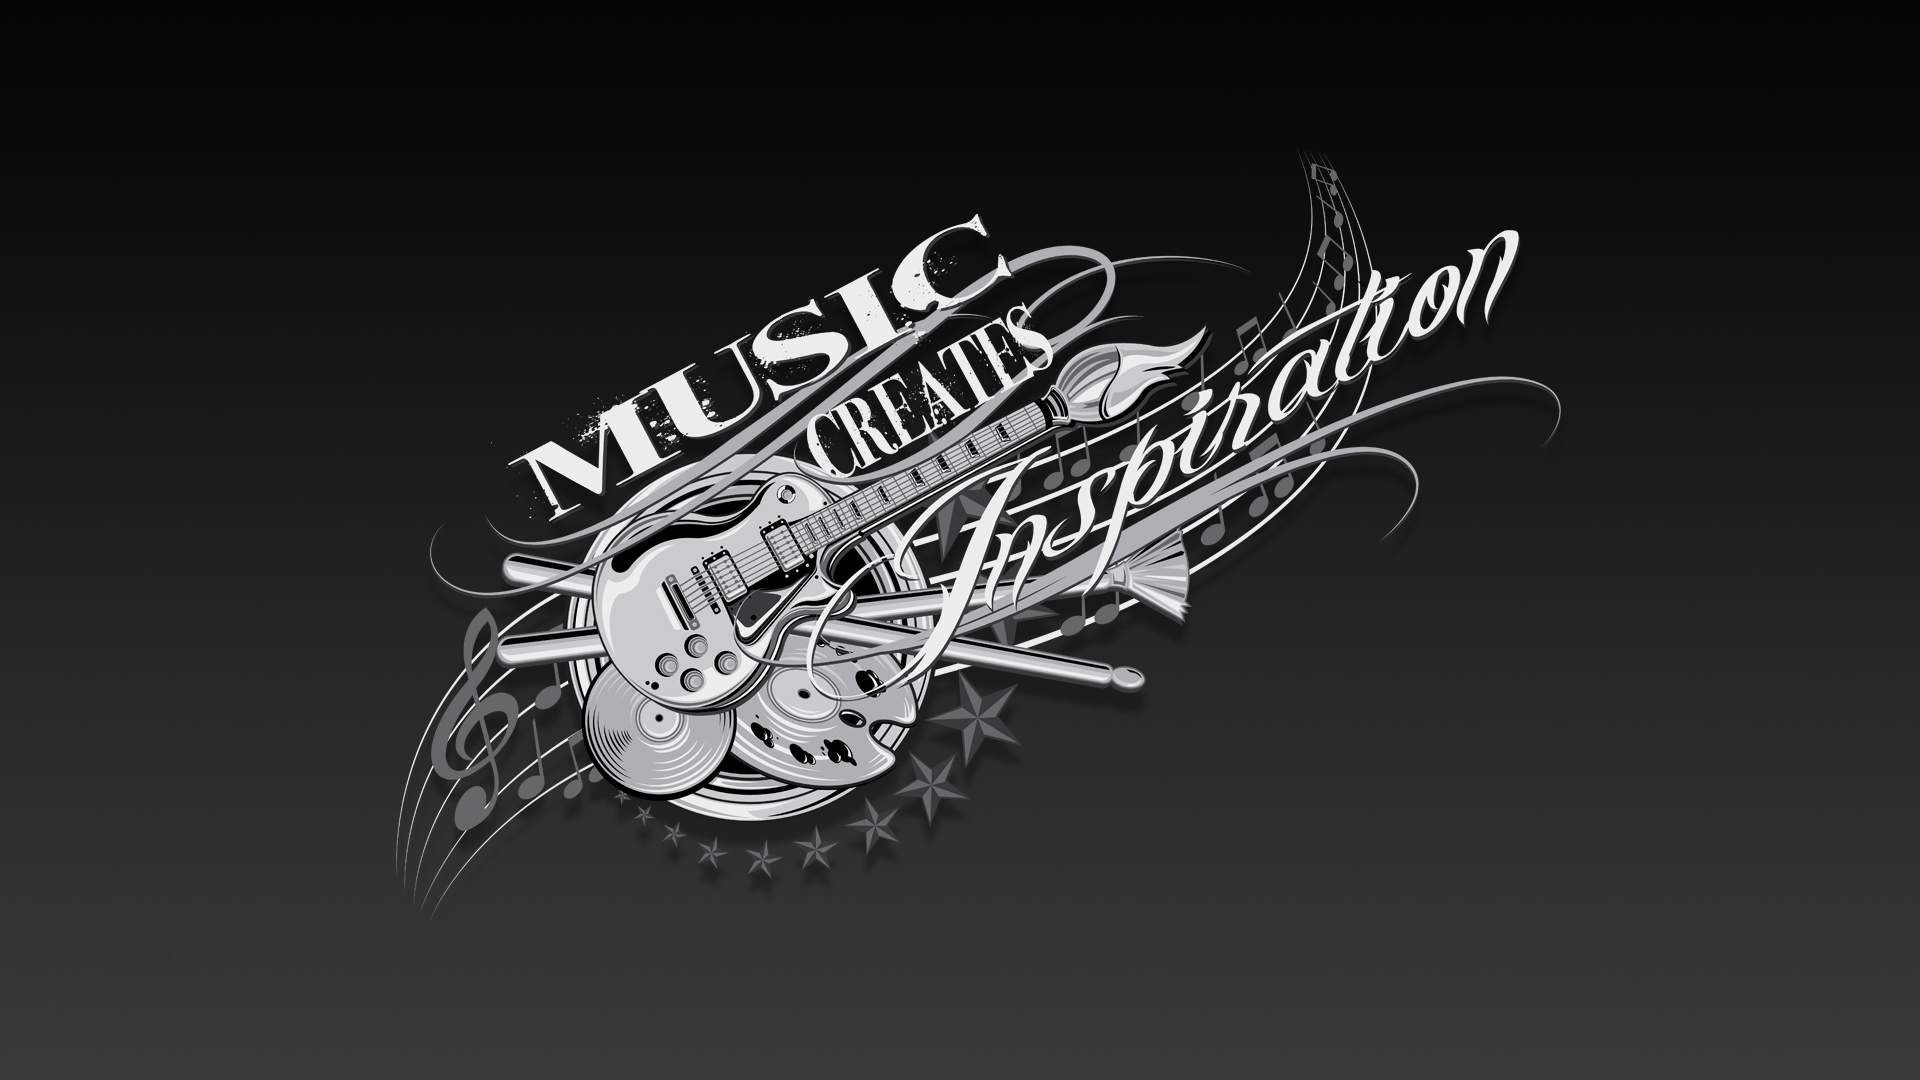 music creates inspiration wallpaper by reyjdesigns on